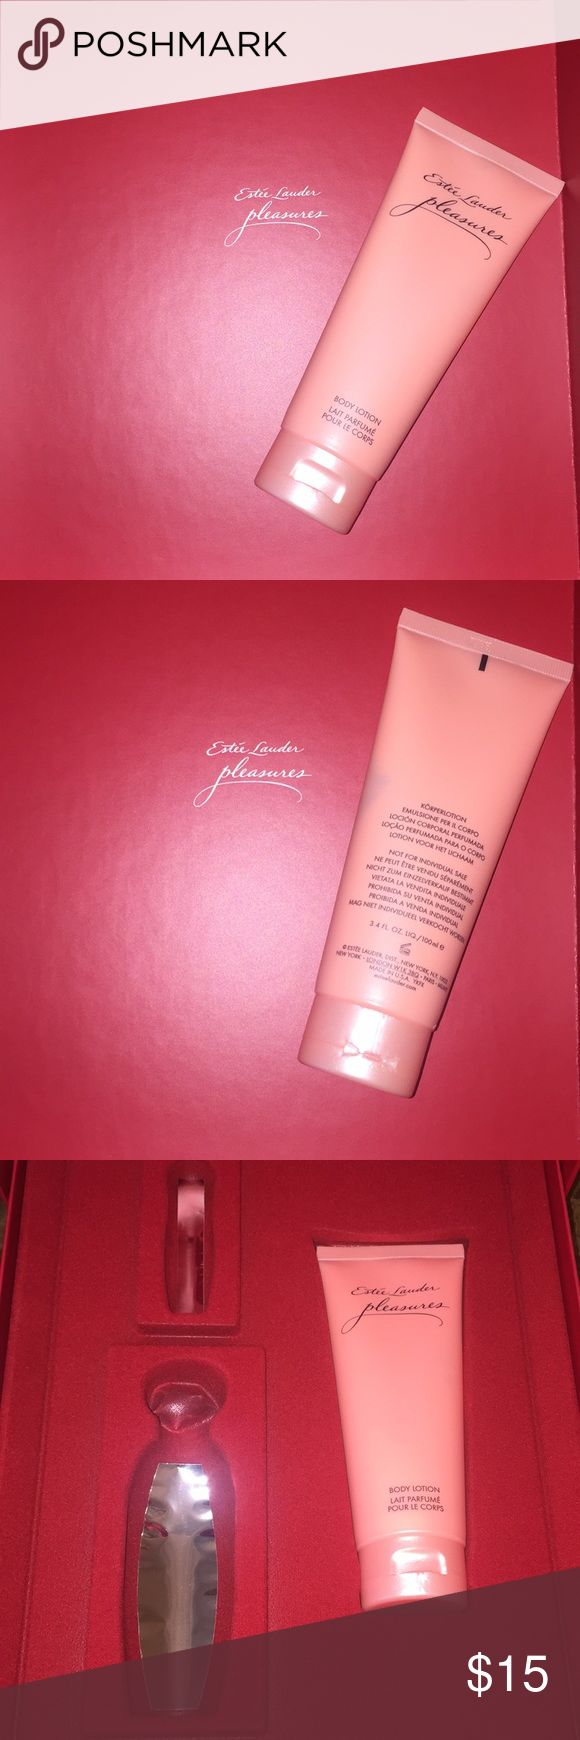 Estée Lauder Pleasures Body Lotion Brand new! I just use her fragrance! Added box pictures die proof of purchase in store Estee Lauder Makeup